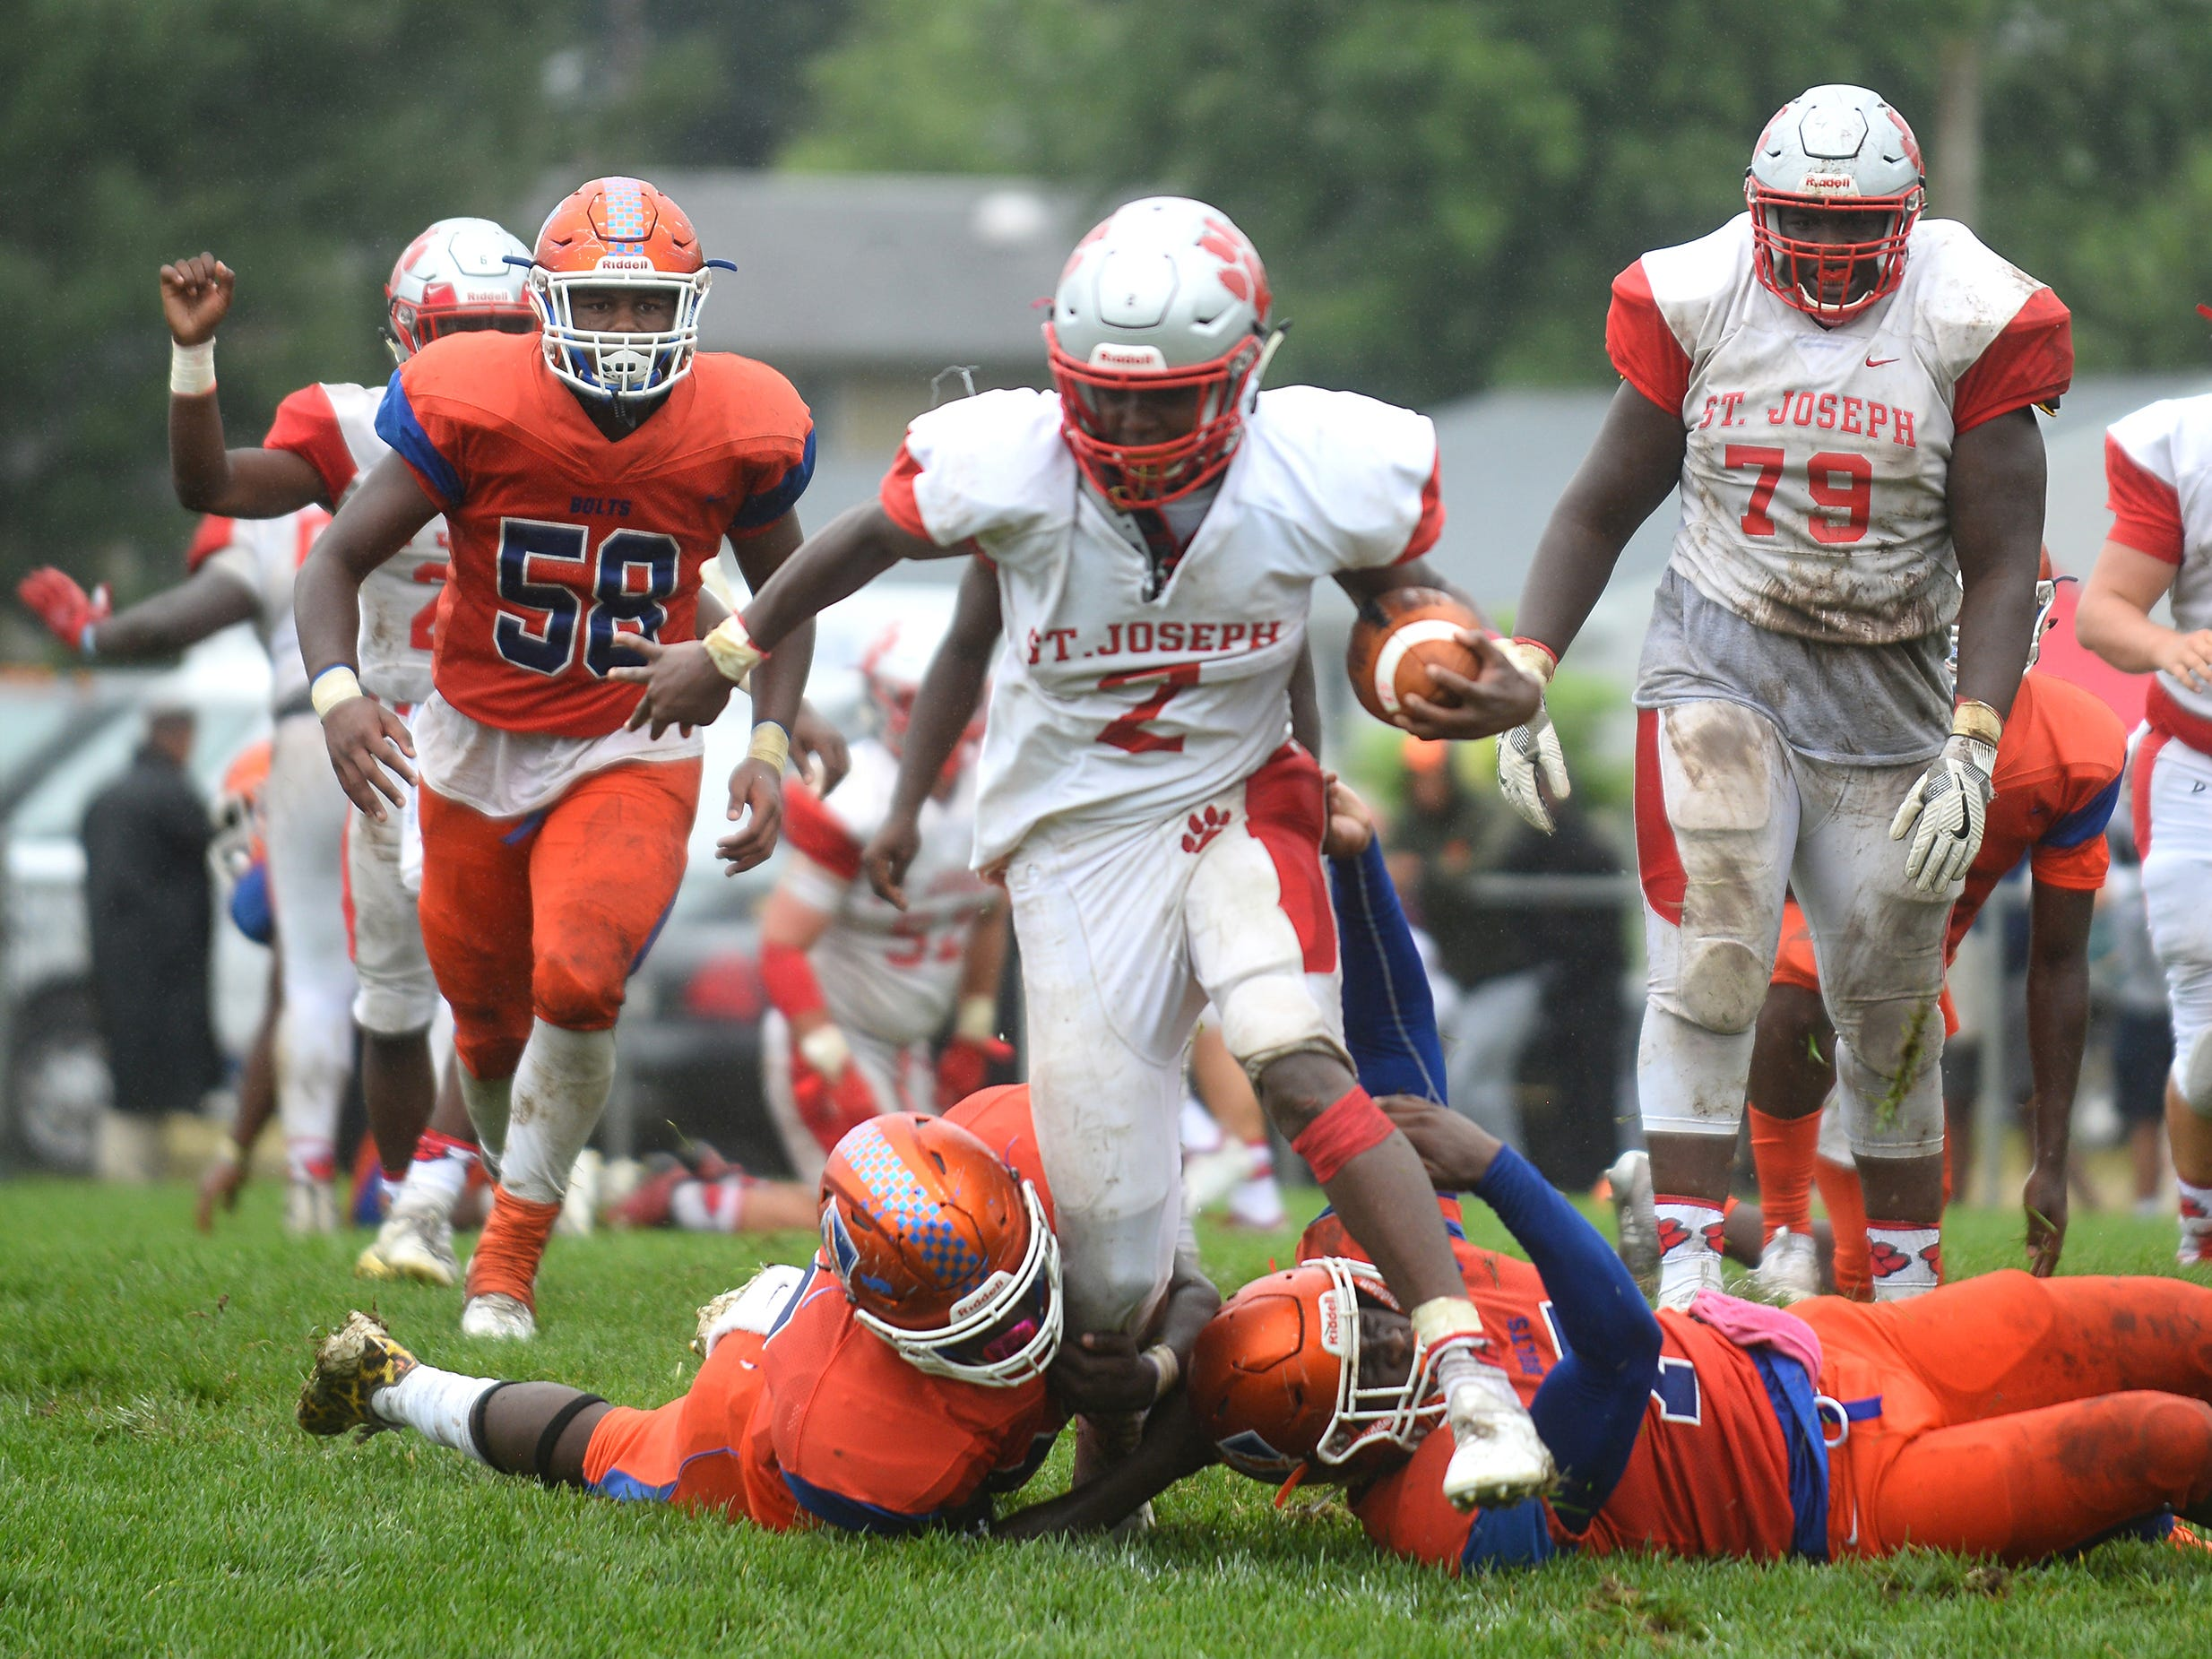 St. Joeseph RB, Ahmad Ross (2) runs the ball for a short gain against Millville on Saturday, September 8.